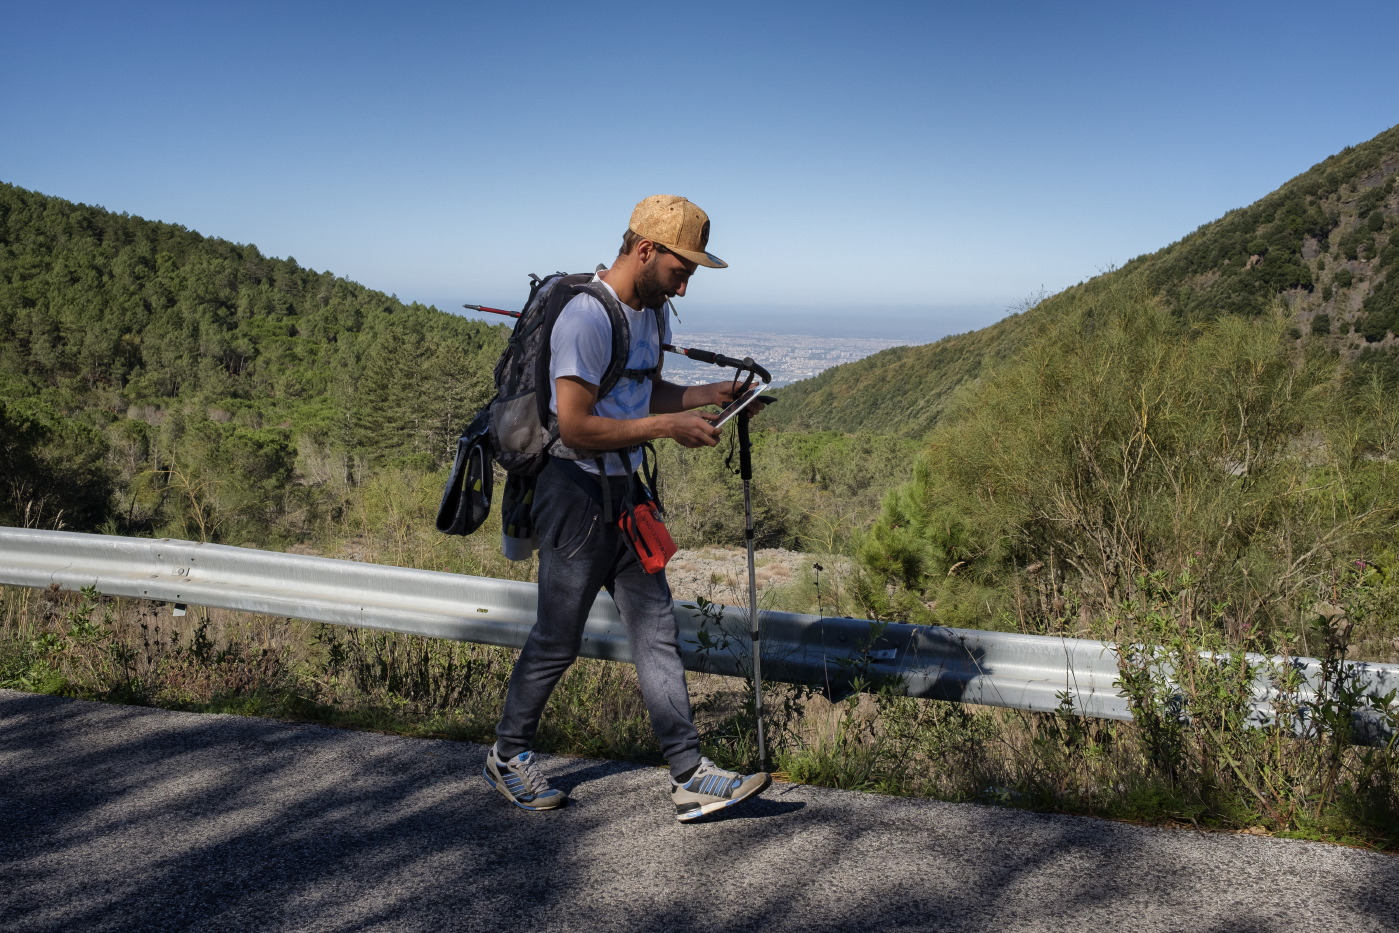 28-year-old Christian Ferri is seen during an anti-prohibitionist climbing, on the road to the Vesuvius mountain. To dull his pain, resulting from dozens of operations he has undergone since a car accident, Christian uses cannabis from self-cultivation or from the black market. Naples, Italy 2016. © Matteo Bastianelli